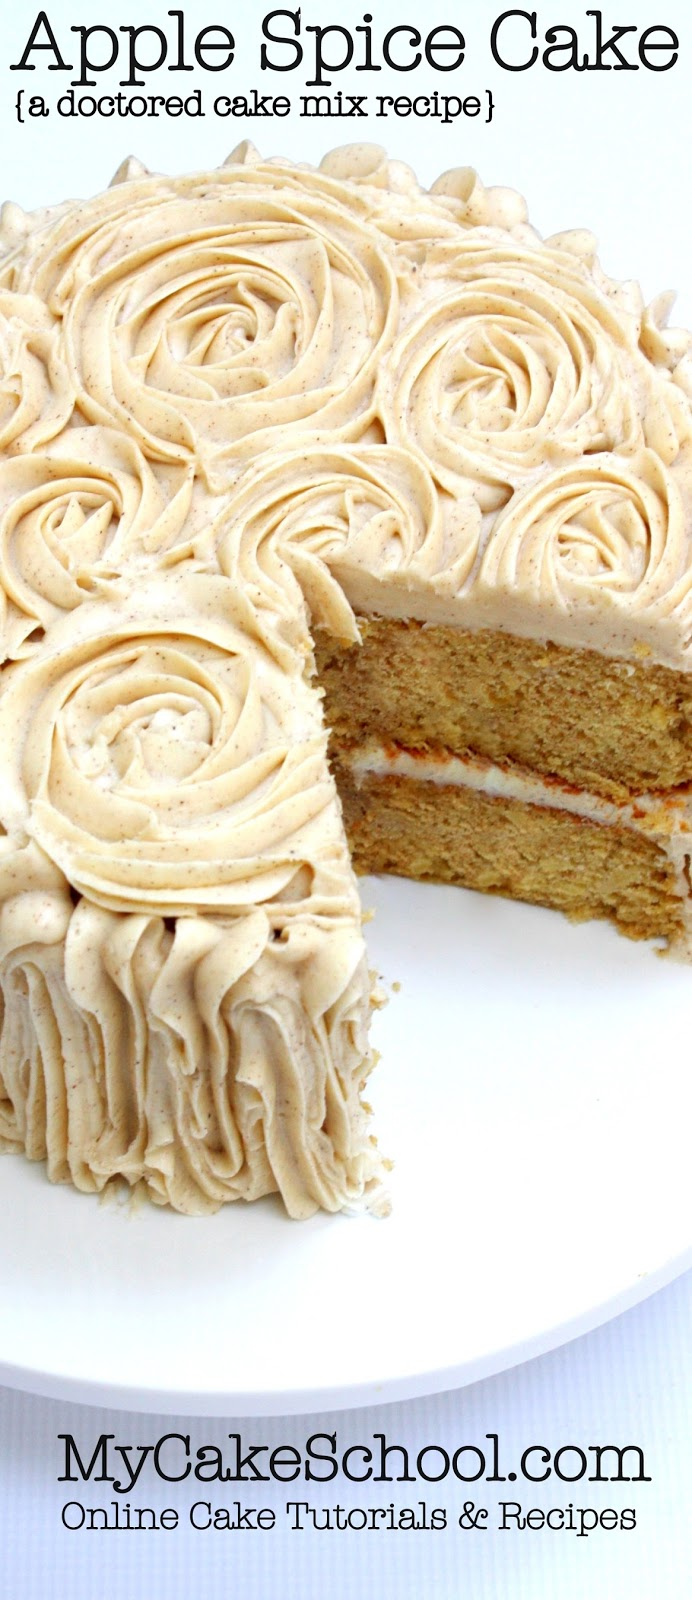 Apple Spice Cake A Doctored Cake Mix Recipe My Kitchen